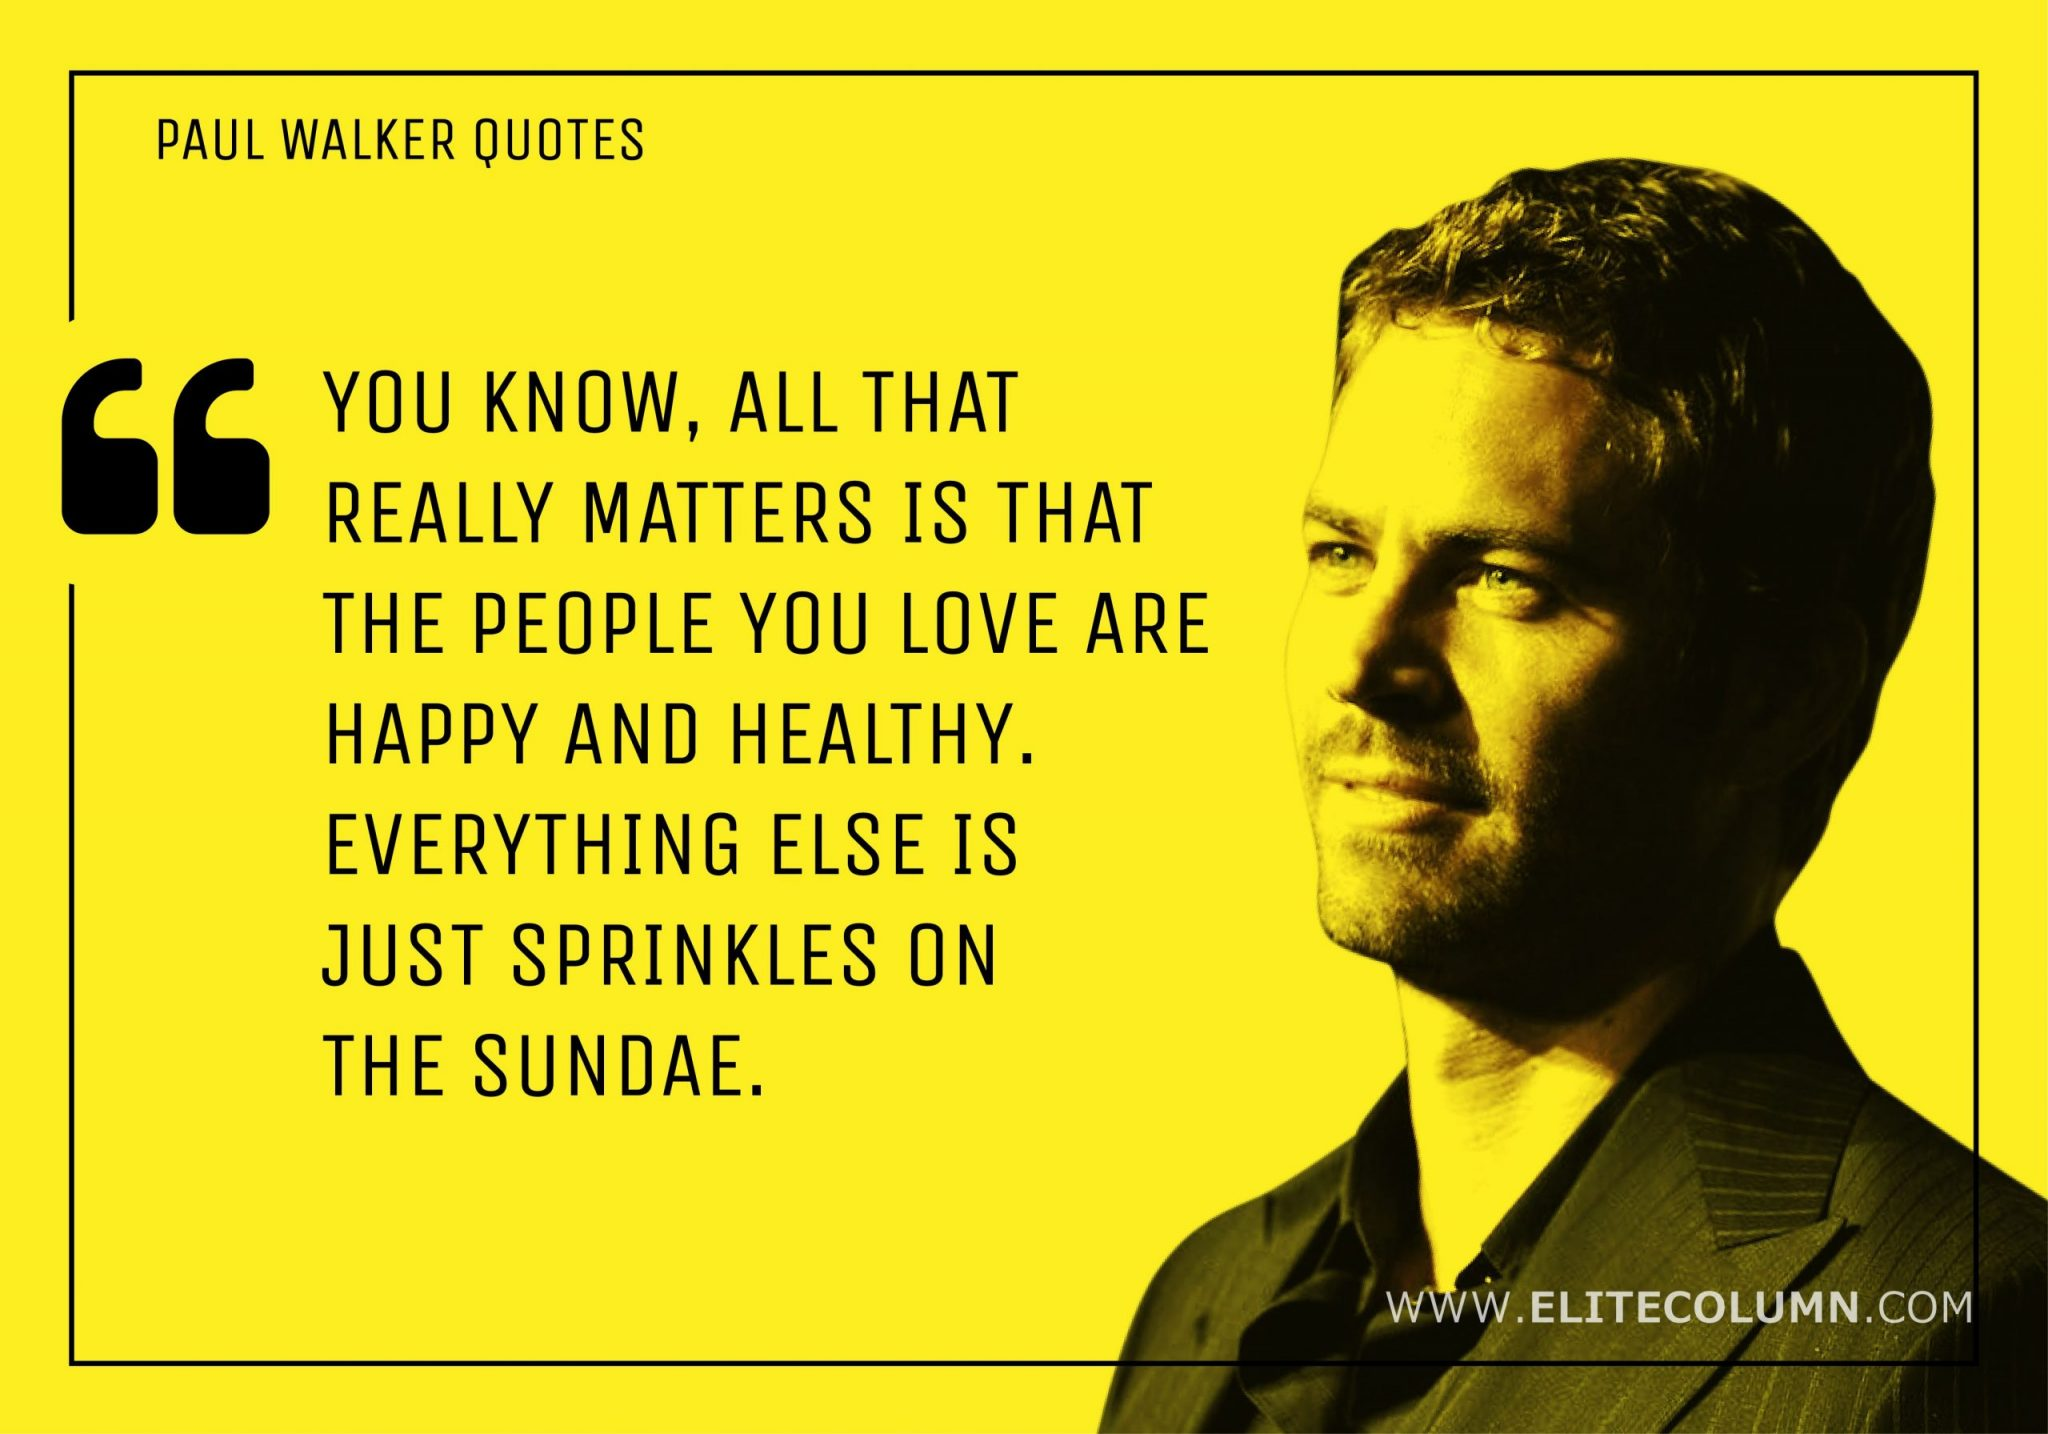 Paul Walker Quotes (1)